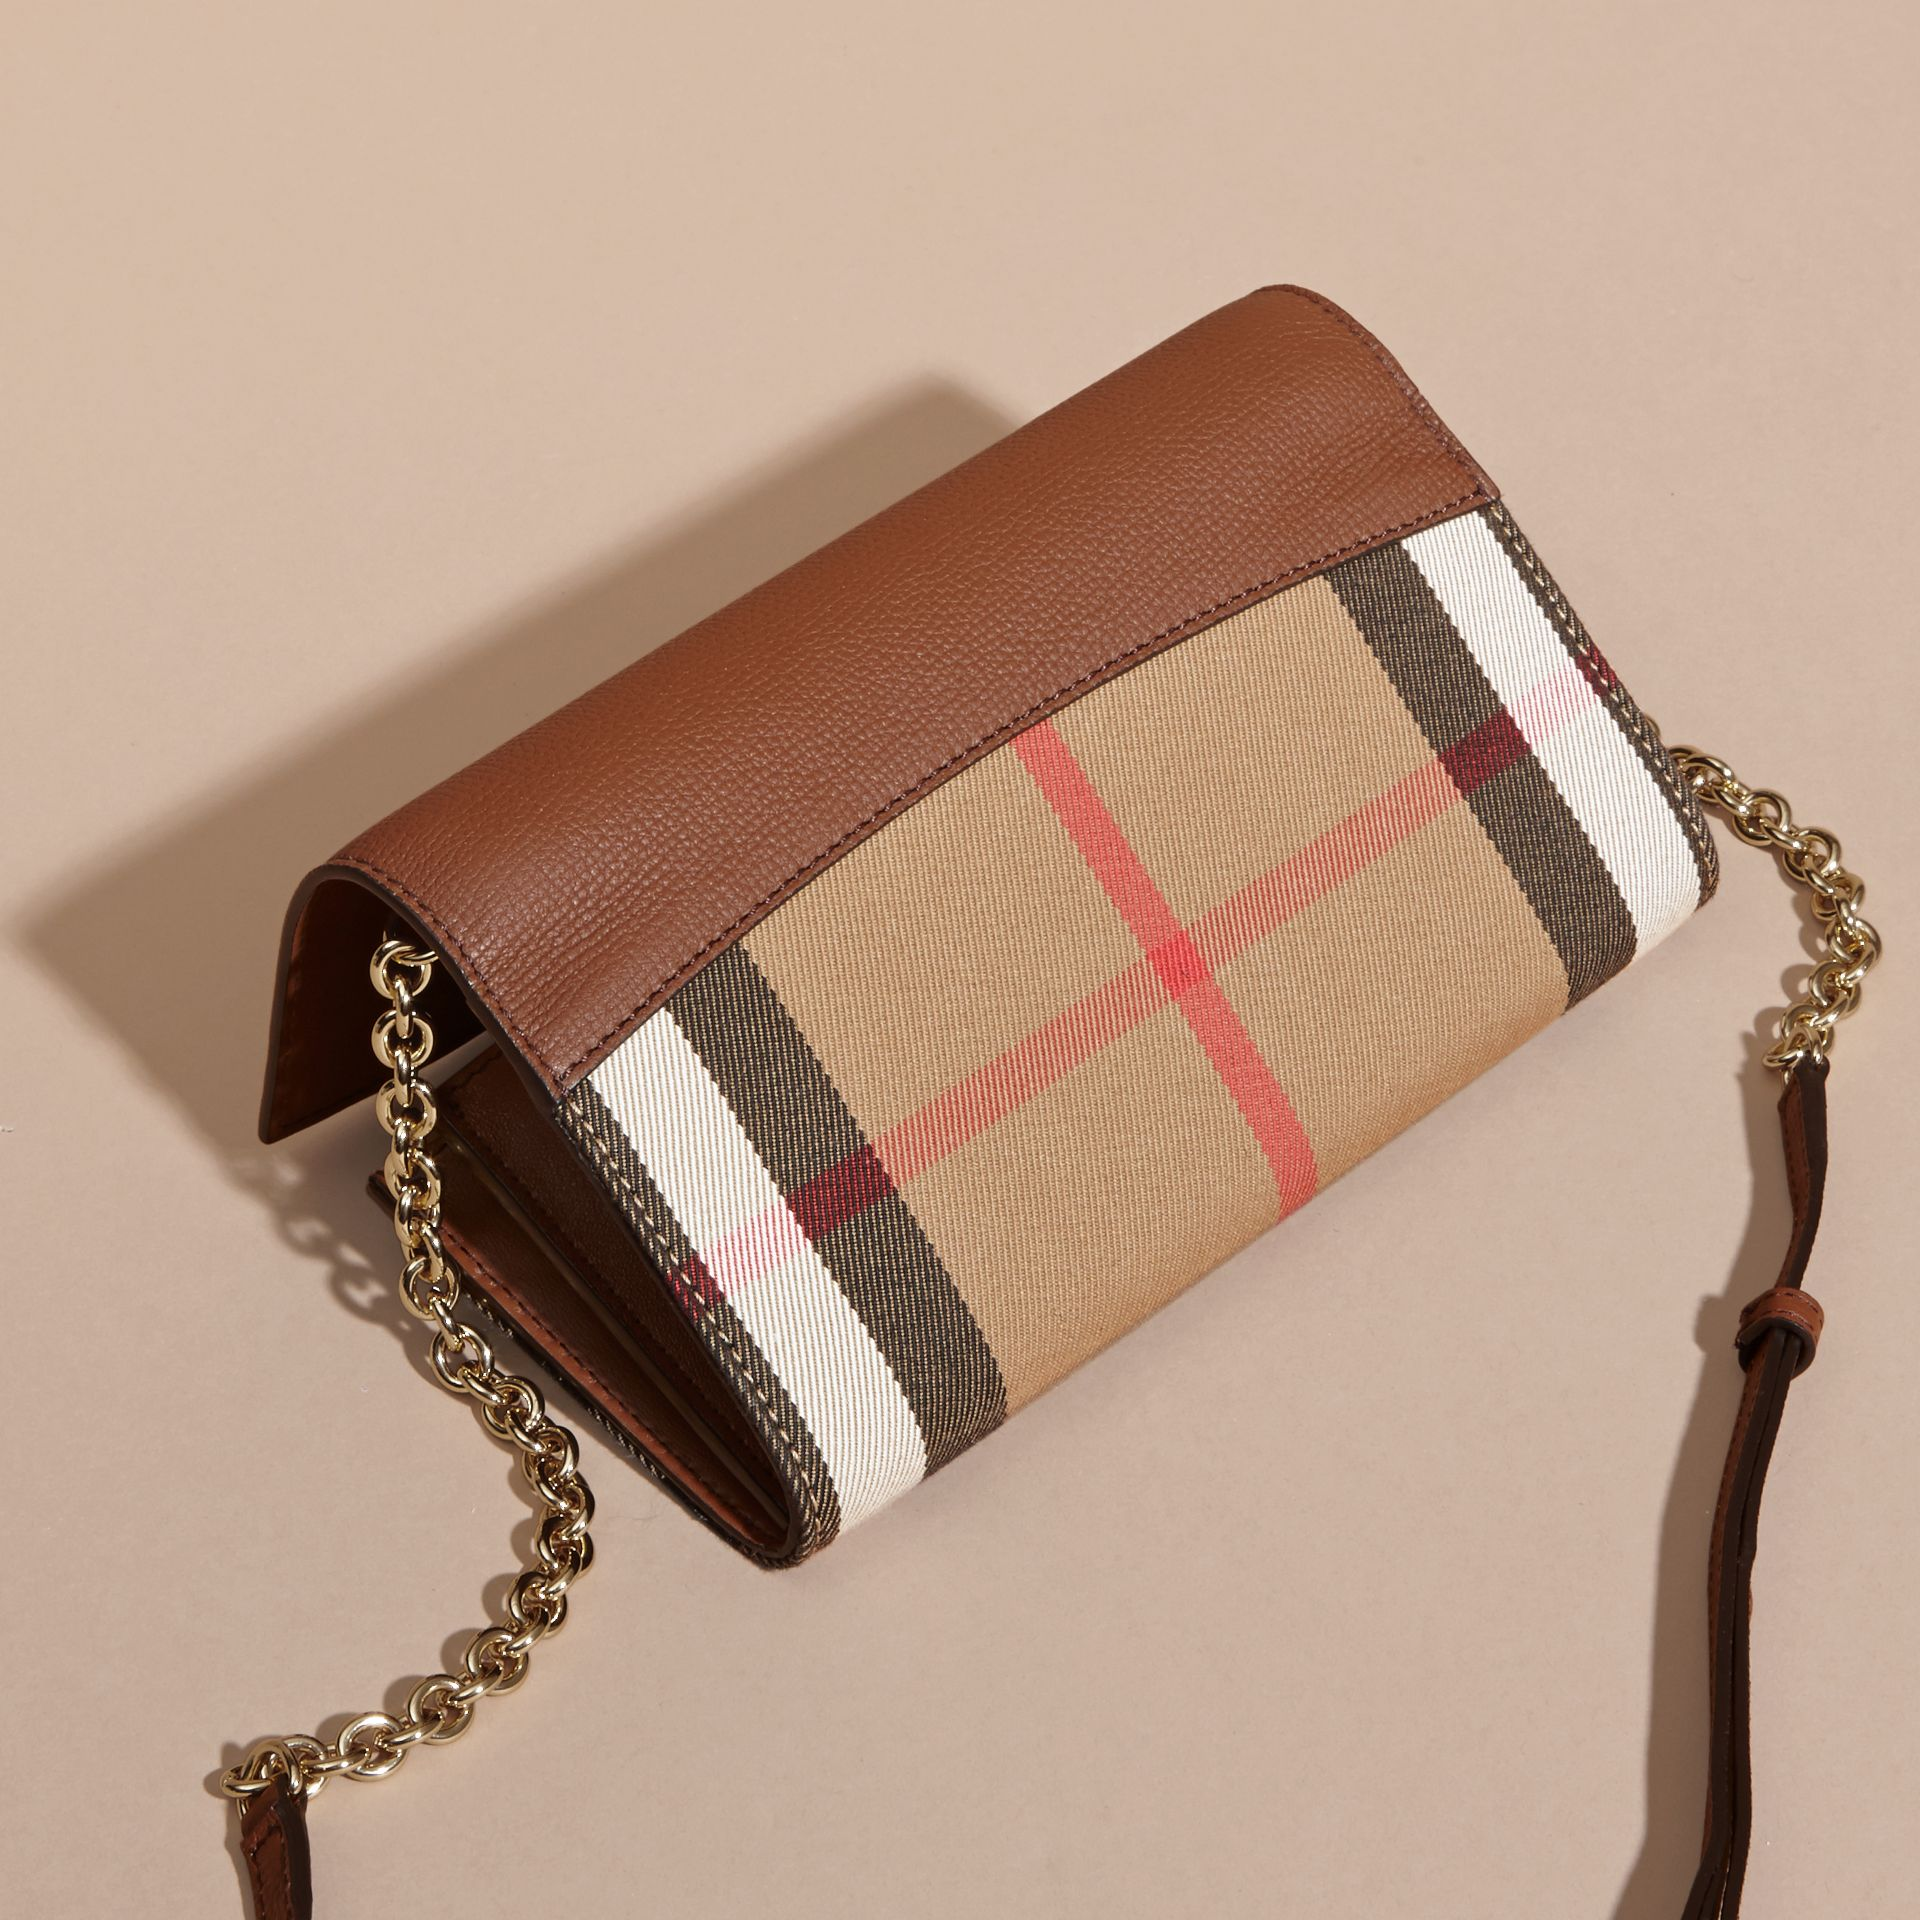 House Check and Leather Wallet with Chain in Tan - Women | Burberry - gallery image 5